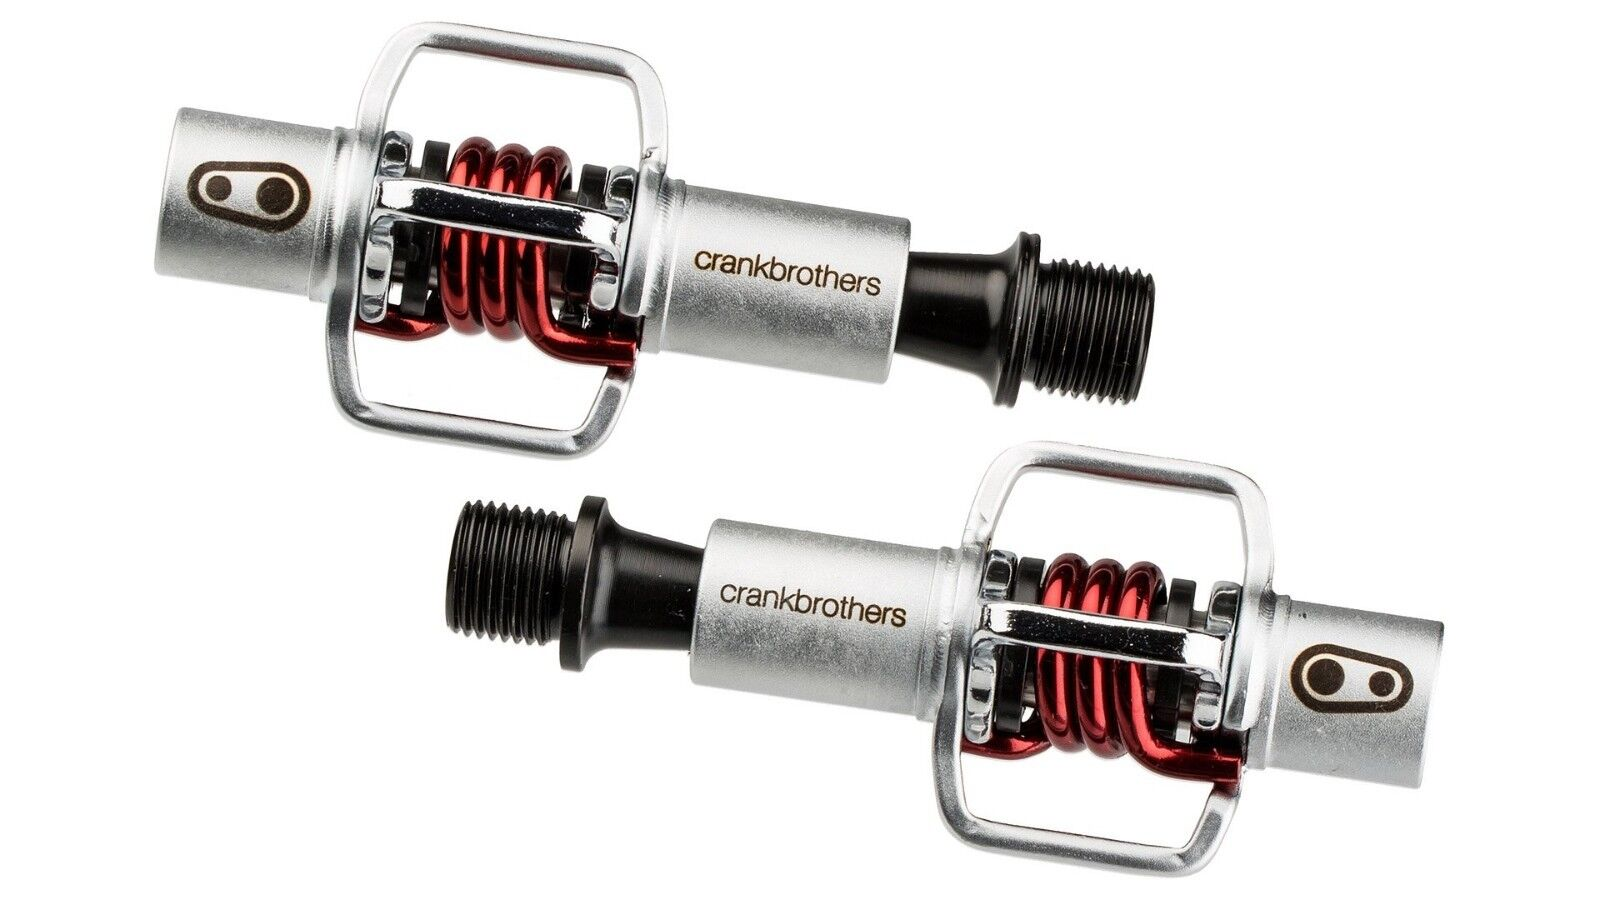 Pedali CRANK BROTHERS Mod.EGGBEATER 1 ROT + Tacchette/PEDALS CRANK BROTHERS EGG